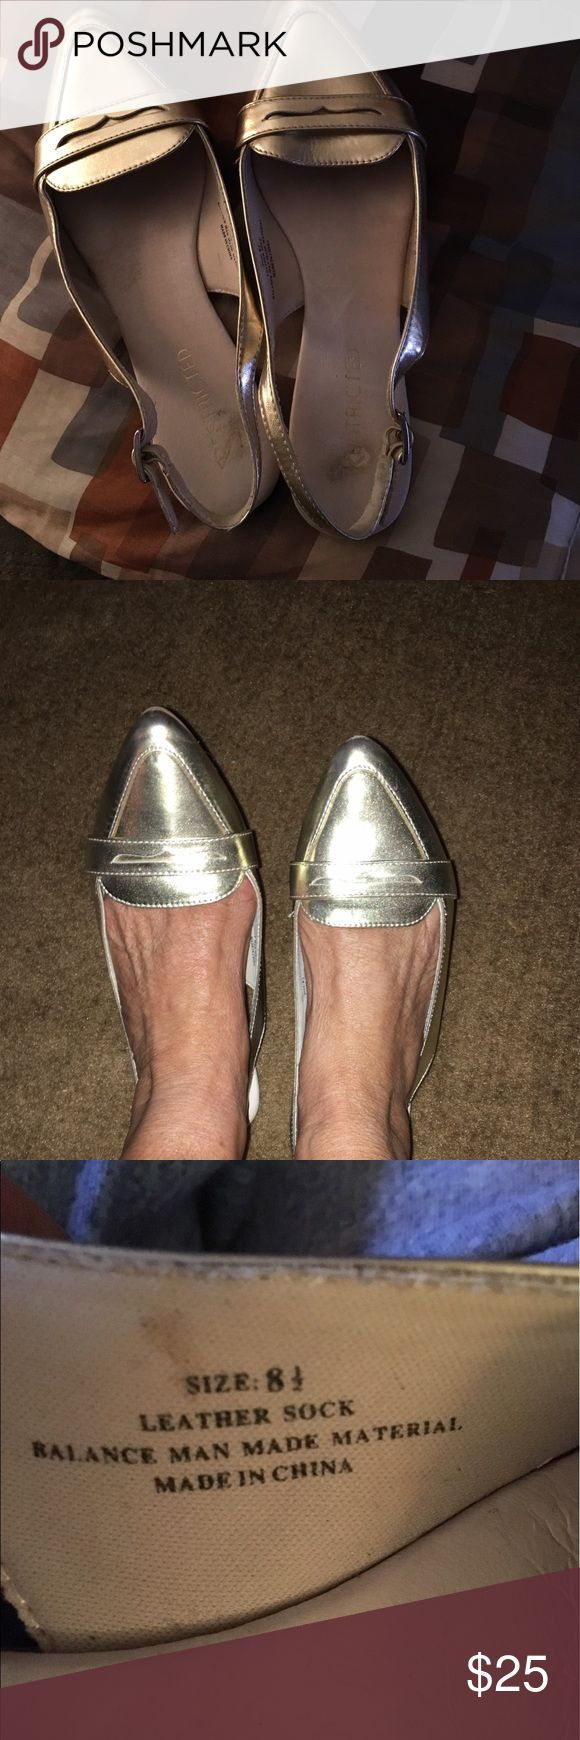 """RESTRICTED GOLD SLINGS 💋1HR💋DRESS EM UP OR WEAR WITH SHORTS PERFECT SUMMER MUST HAVE 10,5 L 3.2"""" W Restricted Shoes Flats & Loafers"""